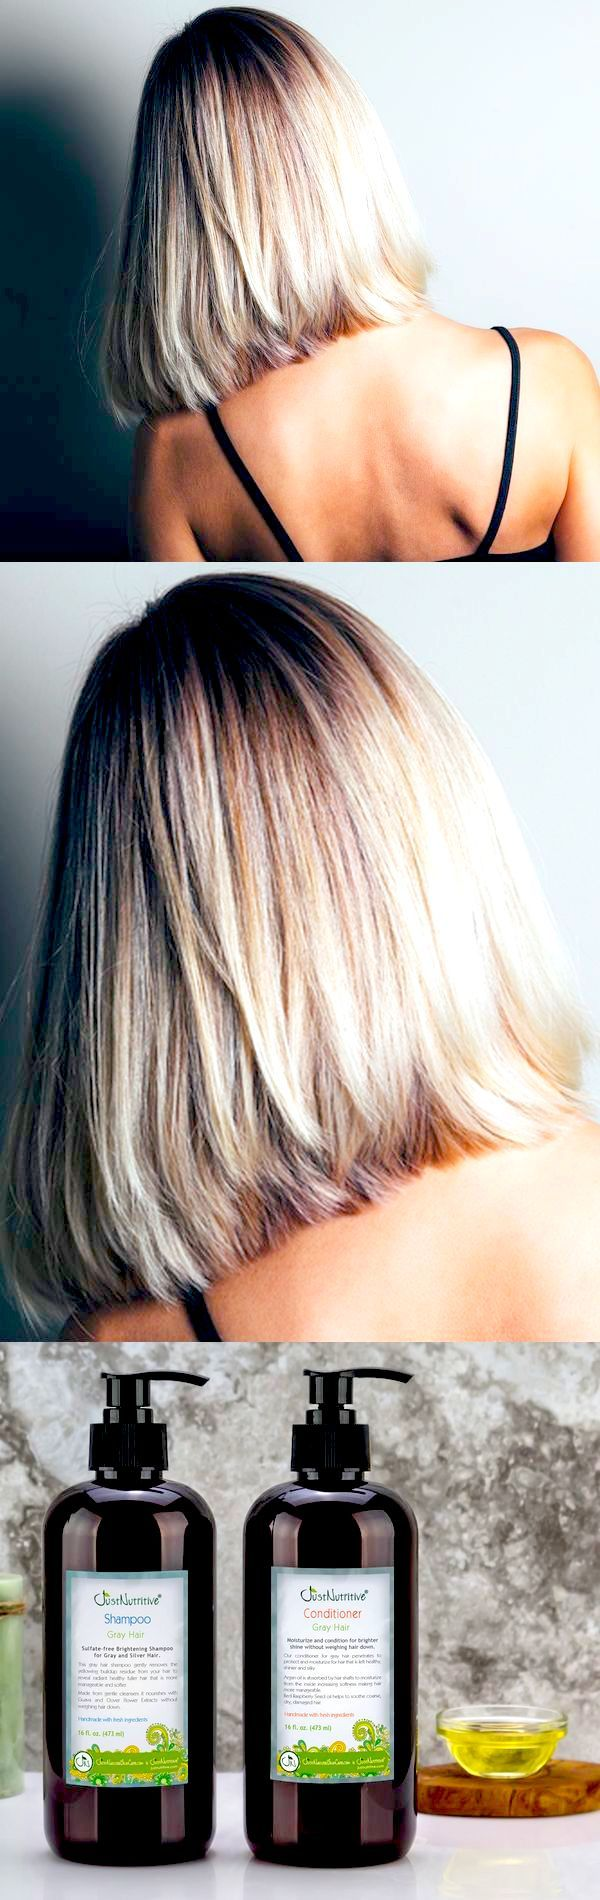 I have had grey/white hair for about 3 years now. It's starting to get lots of white in it. I was concerned about it getting brassy, yellow tones in it. I have researched other shampoos that are purple on the market. There are NONE on the market that have the amazing ingredients that this shampoo does.